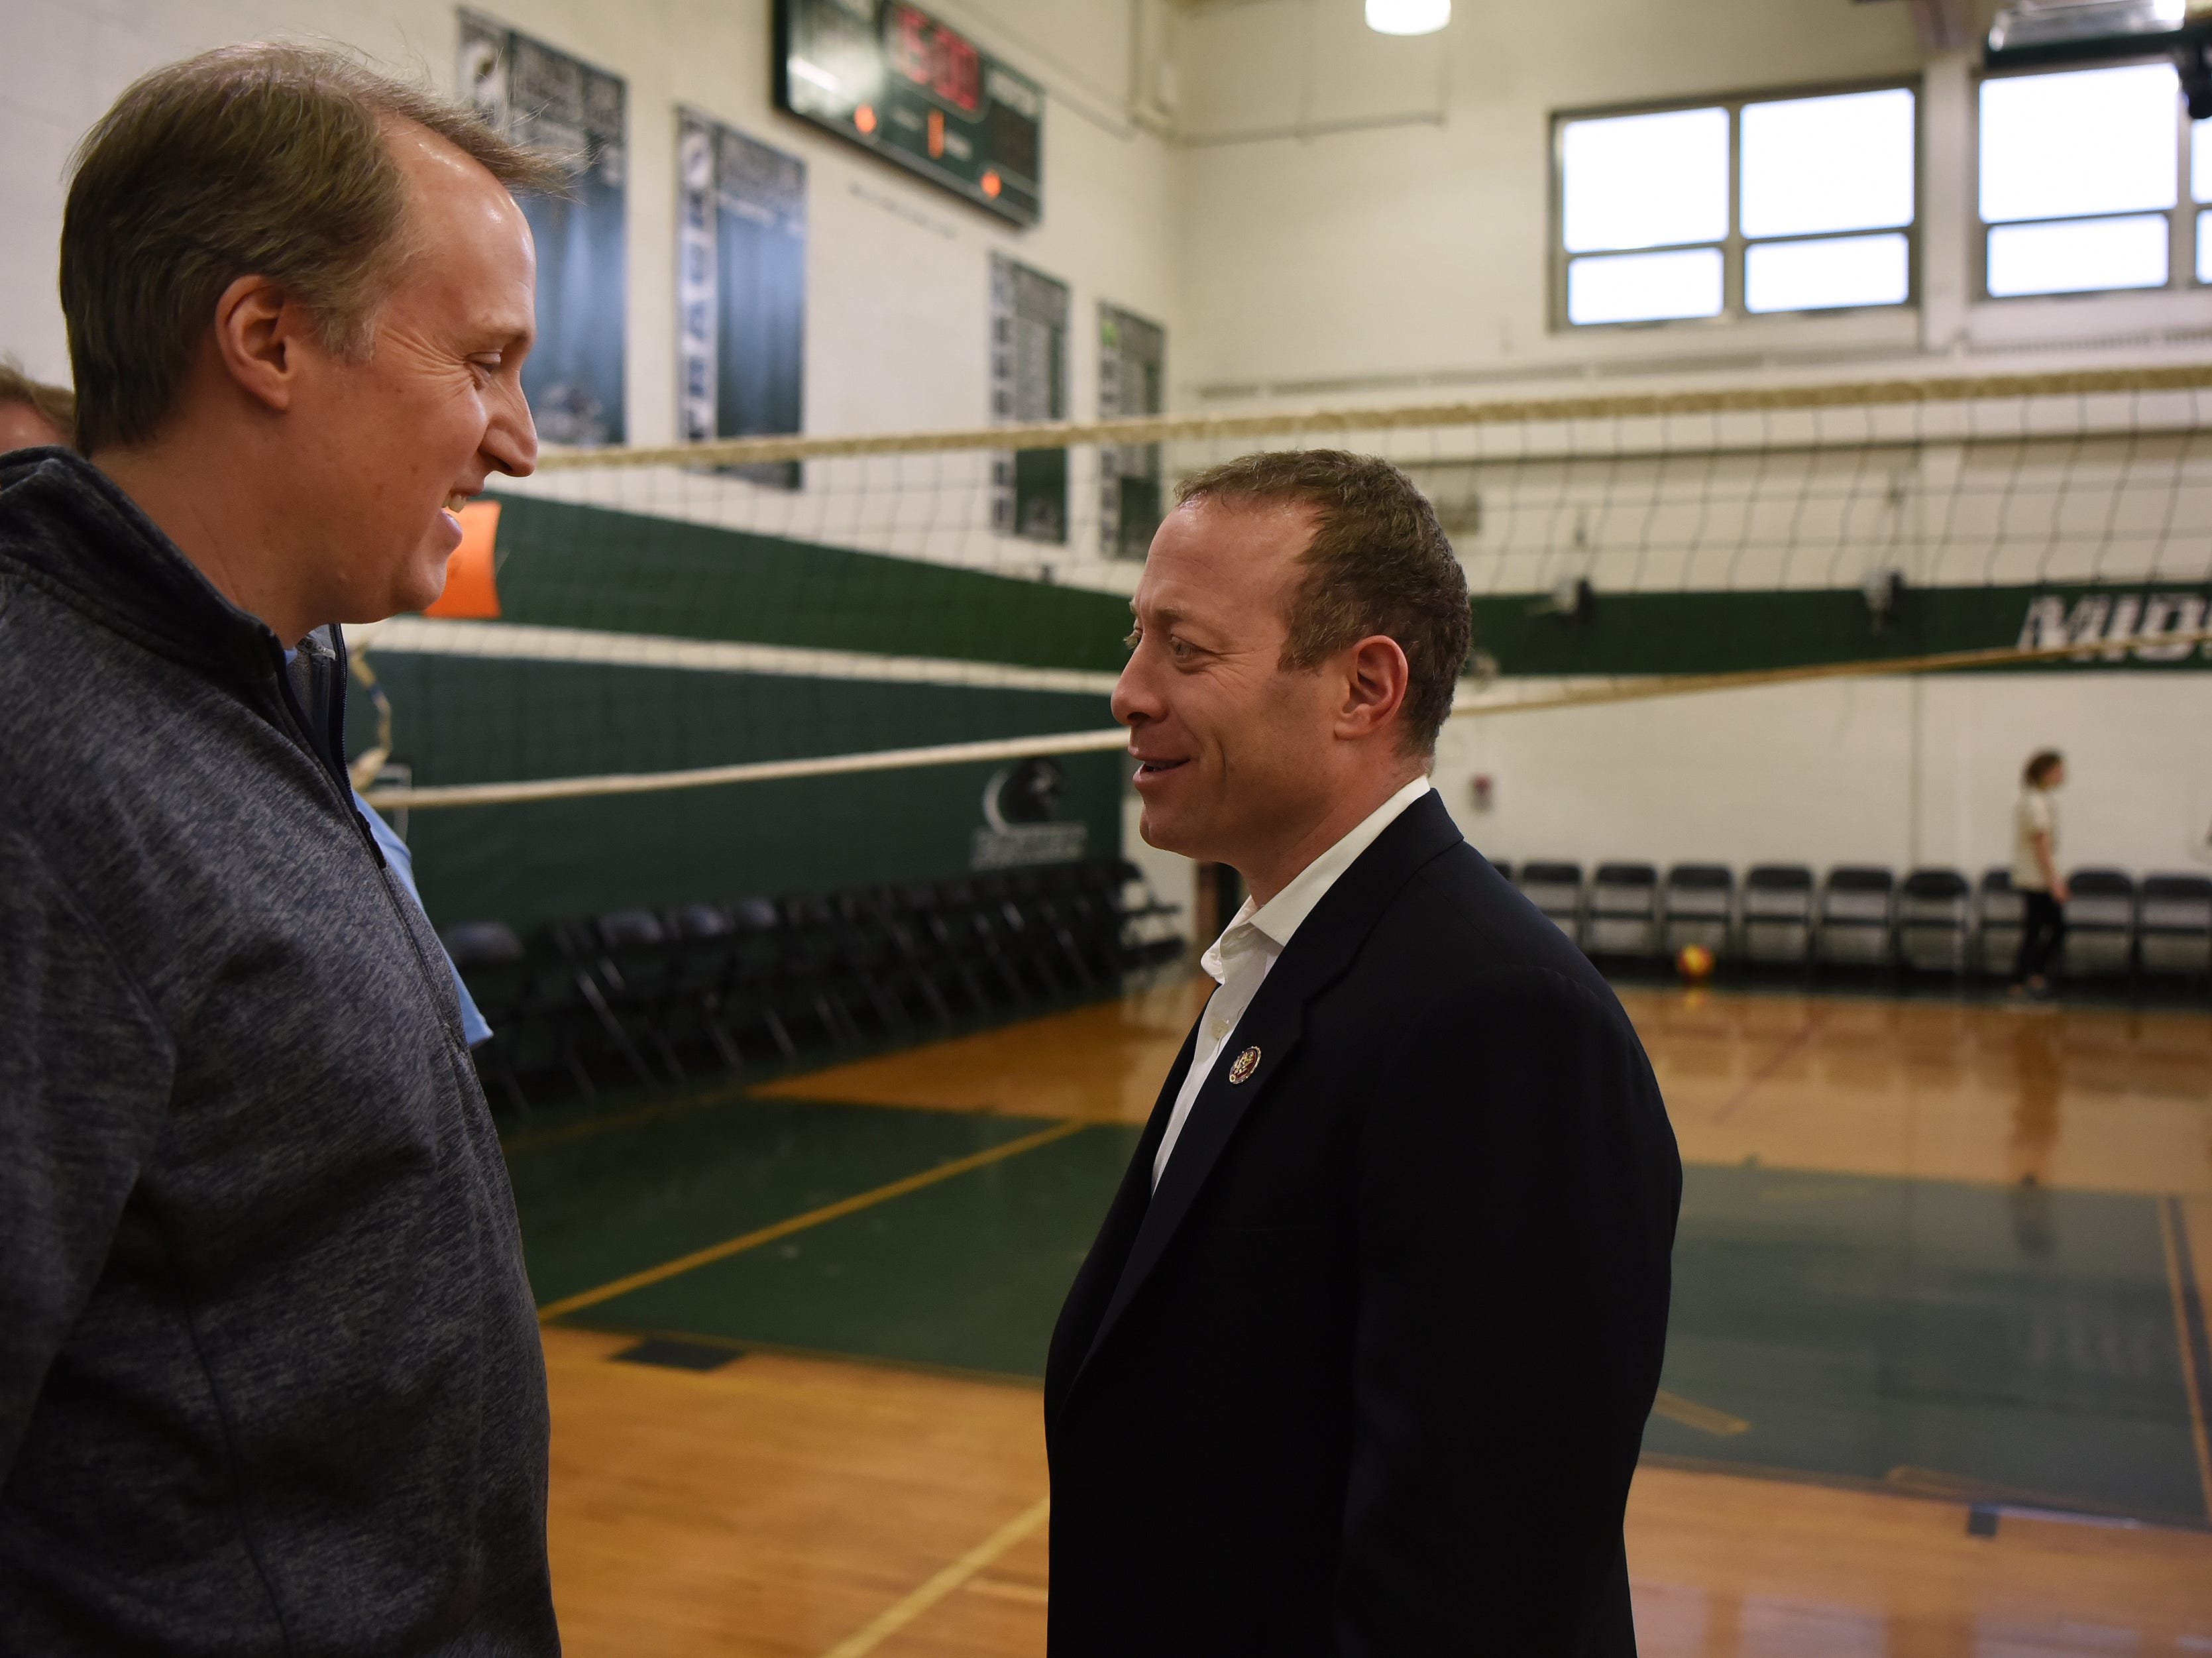 A fundraising Volleyball Tournament is held at Midland Park High School in Midland Park on Saturday February 9, 2019. The event is to raise money for the families of two young people seriously injured in an auto accident in December. Eric Moore is greeted by Congressman Josh Gottheimer.